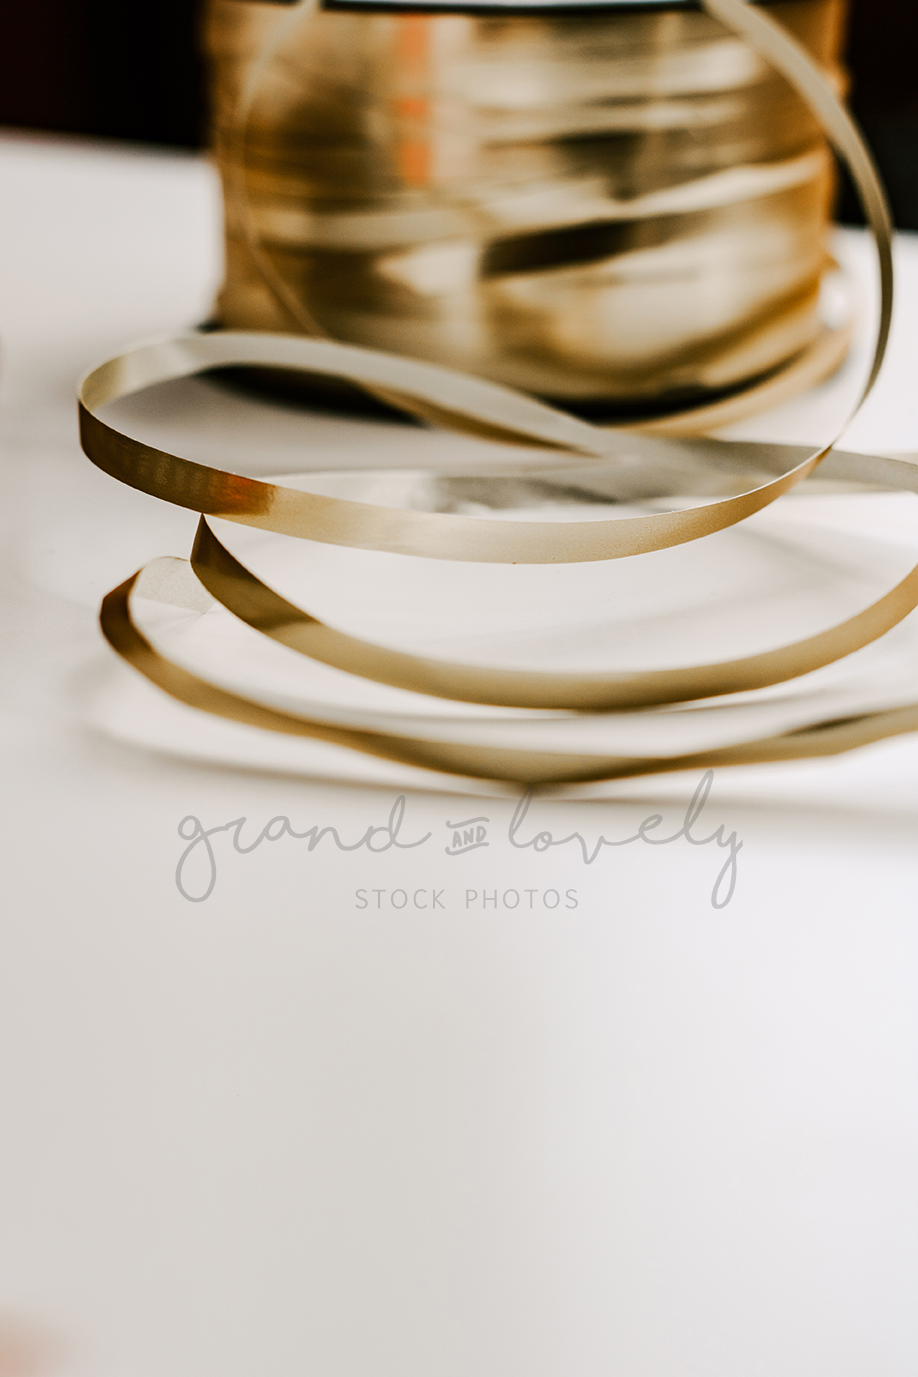 Free Styled Stock Photo | Gold String Stationary shine - Grand & Lovely Stock styled photography desktops lifestyle screens desktops stationary